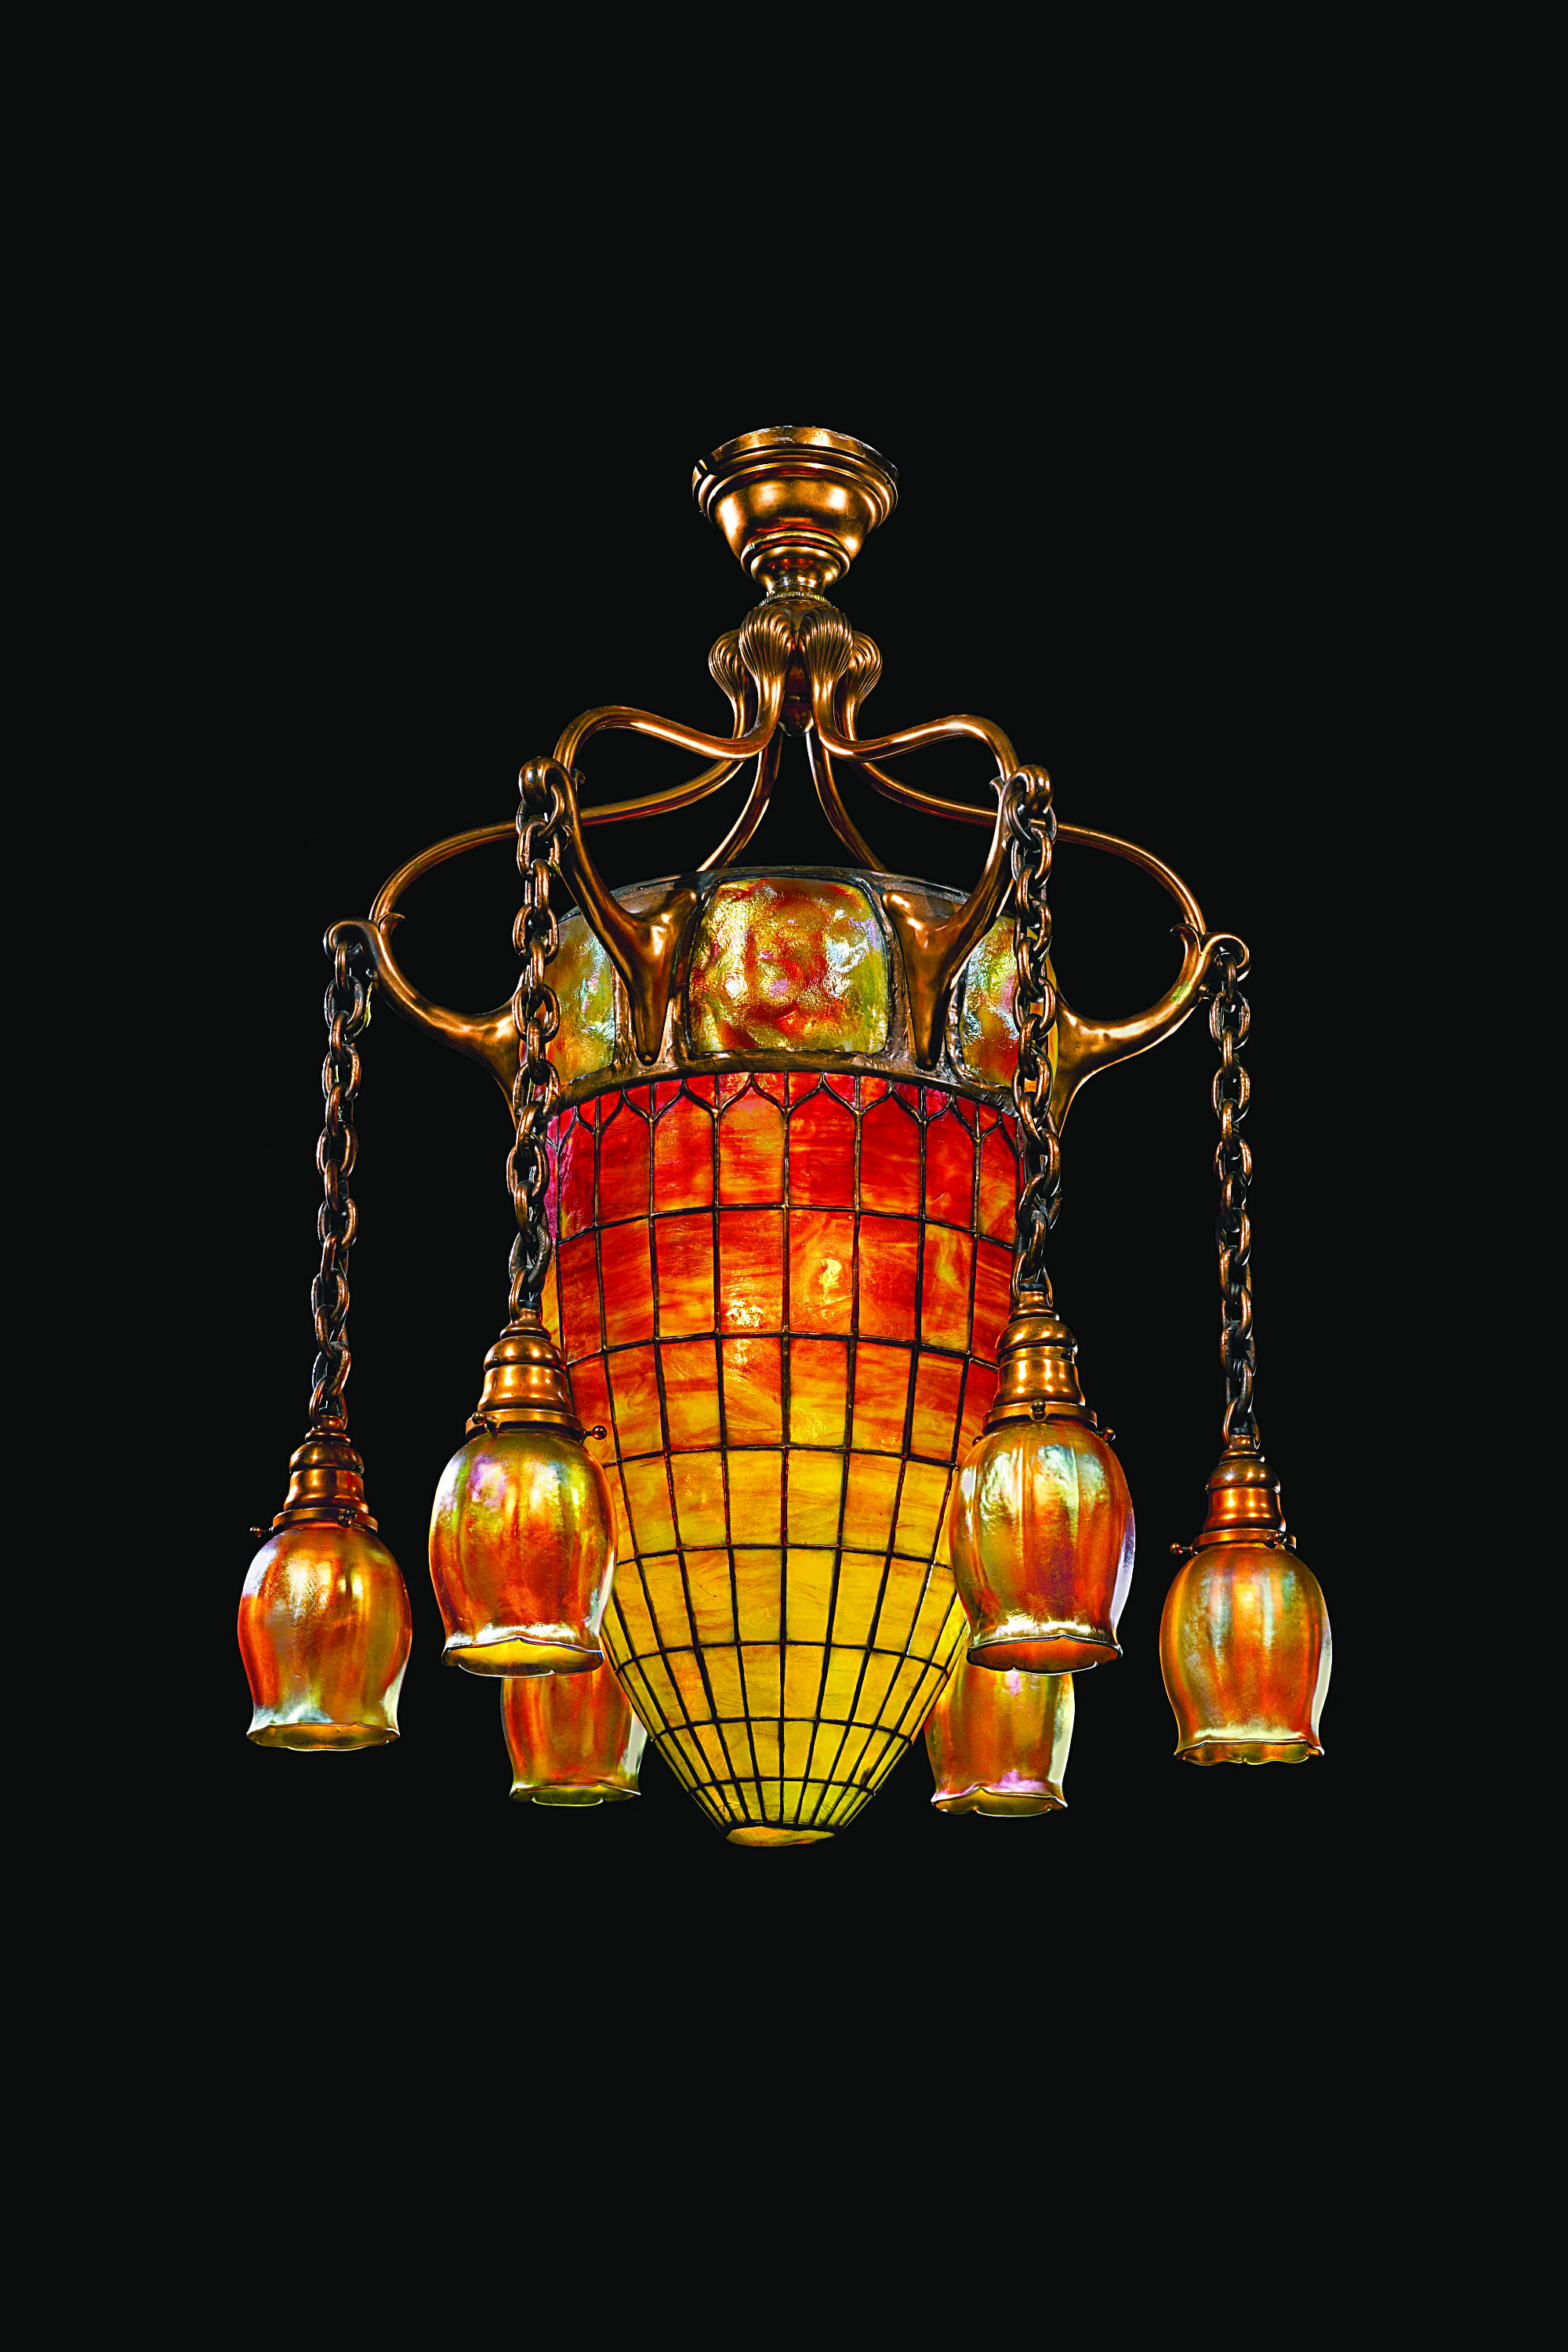 """A Tiffany Studios New York leaded glass and coppered bronze """"Geometric"""" chandelier with six golden """"Tulip"""" shades. The central shade is  mottled glass circa 1900. 